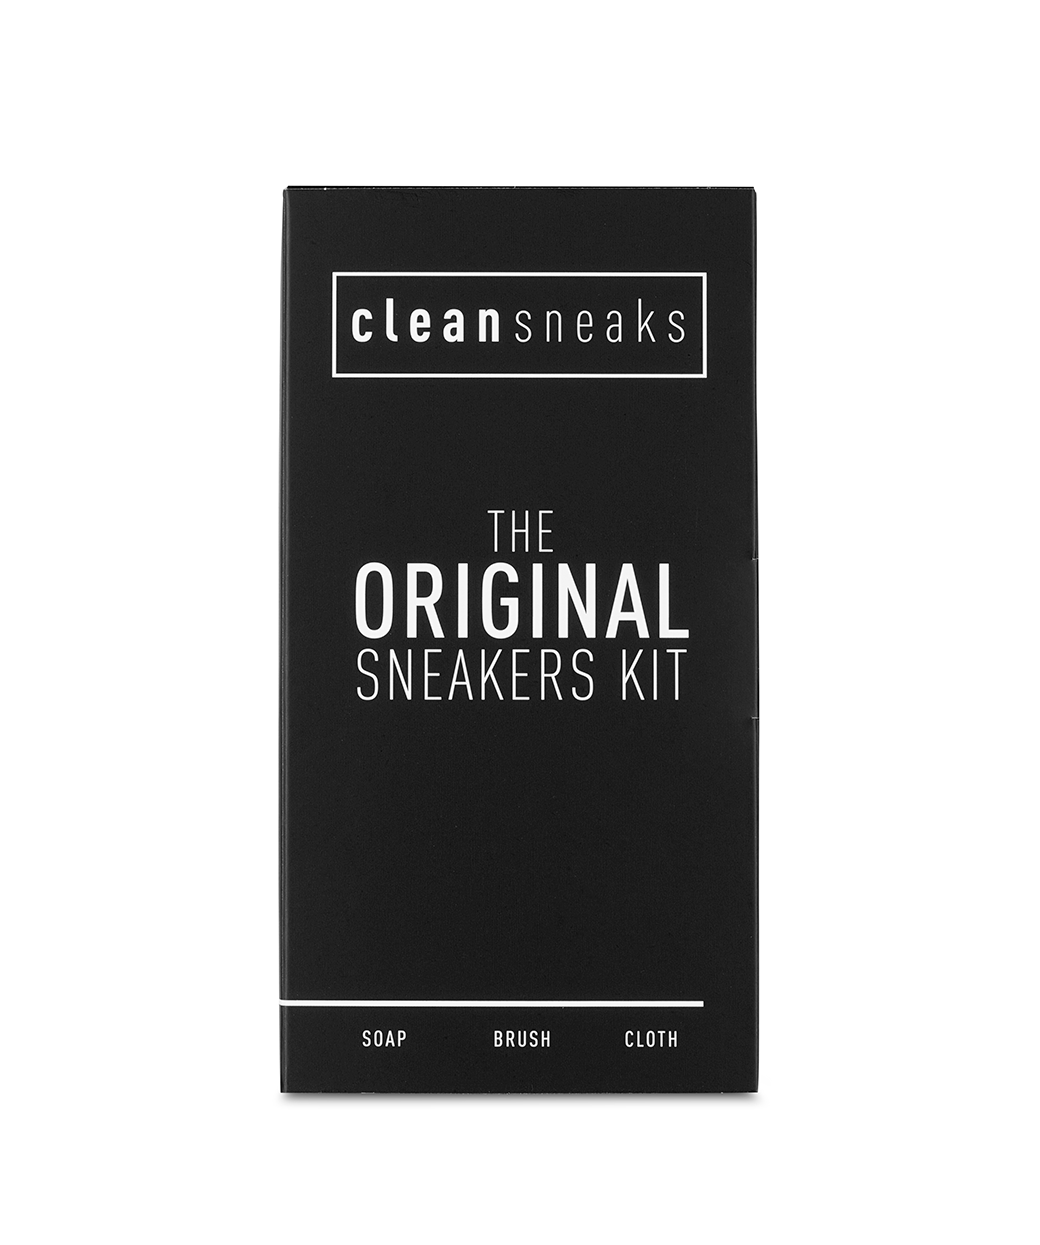 The Original<br>Sneakers Kit